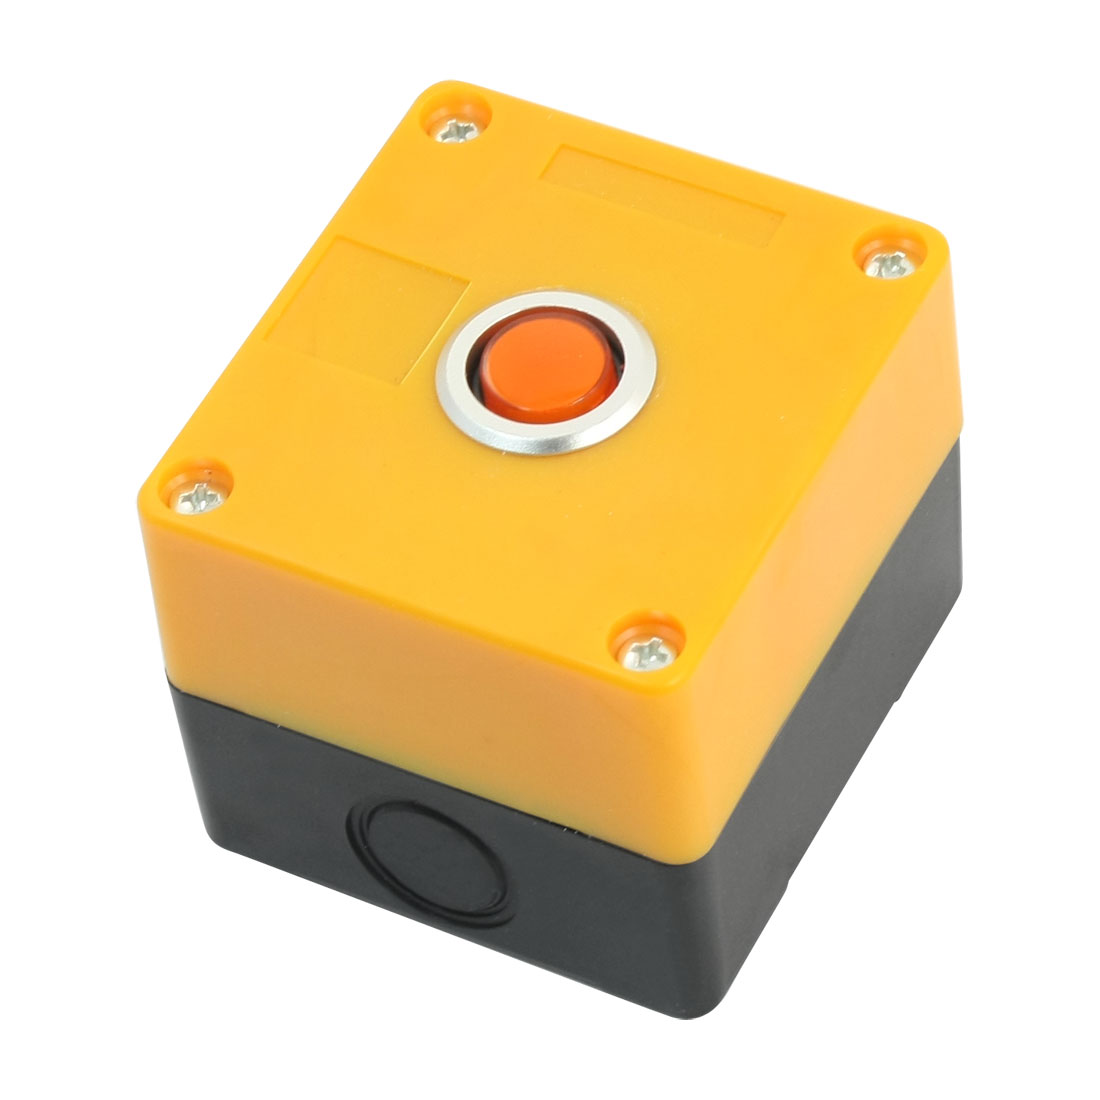 AC220V 5A Orange Light SPDT 1NO 1NC 5Pin Momentary Action Rectangle Plastic Push Button Station Switch Control Box Protector